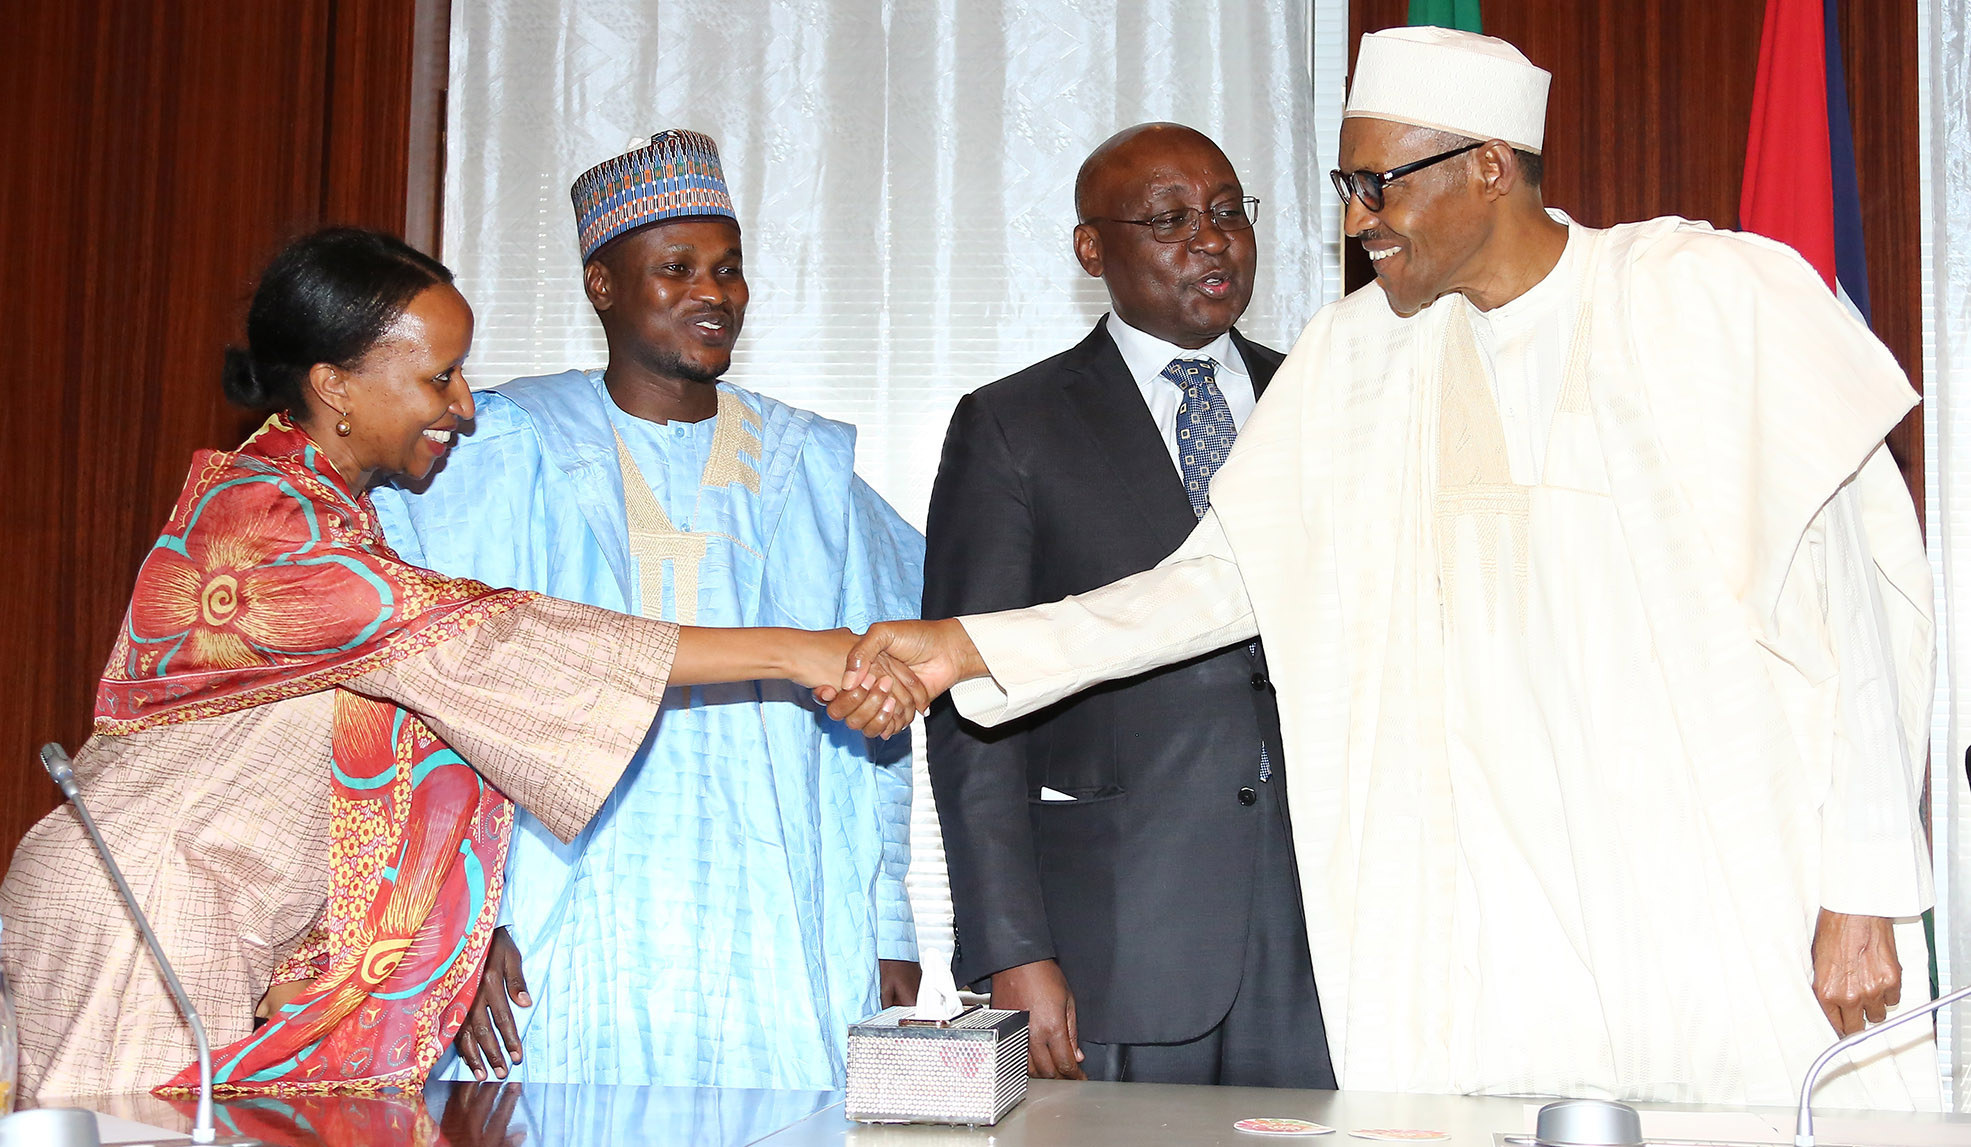 NIGERIA'S PRESIDENT BUHARI RECEIVES ENVOY OF AFRICAN UNION PEACE FUND 4. R-L;  President Muhammadu Buhari, Former President ADB and Special Envoy African Union Peace Fund, Dr Donald Kaberuka, African Union Senior Scientific Officer Coordination, Dr Mohammed Kyari and Ms Wanjiru Nwaura during an audience with the President at the State House in Abuja. PHOTO; SUNDAY AGHAEZE. JULY 11 2016